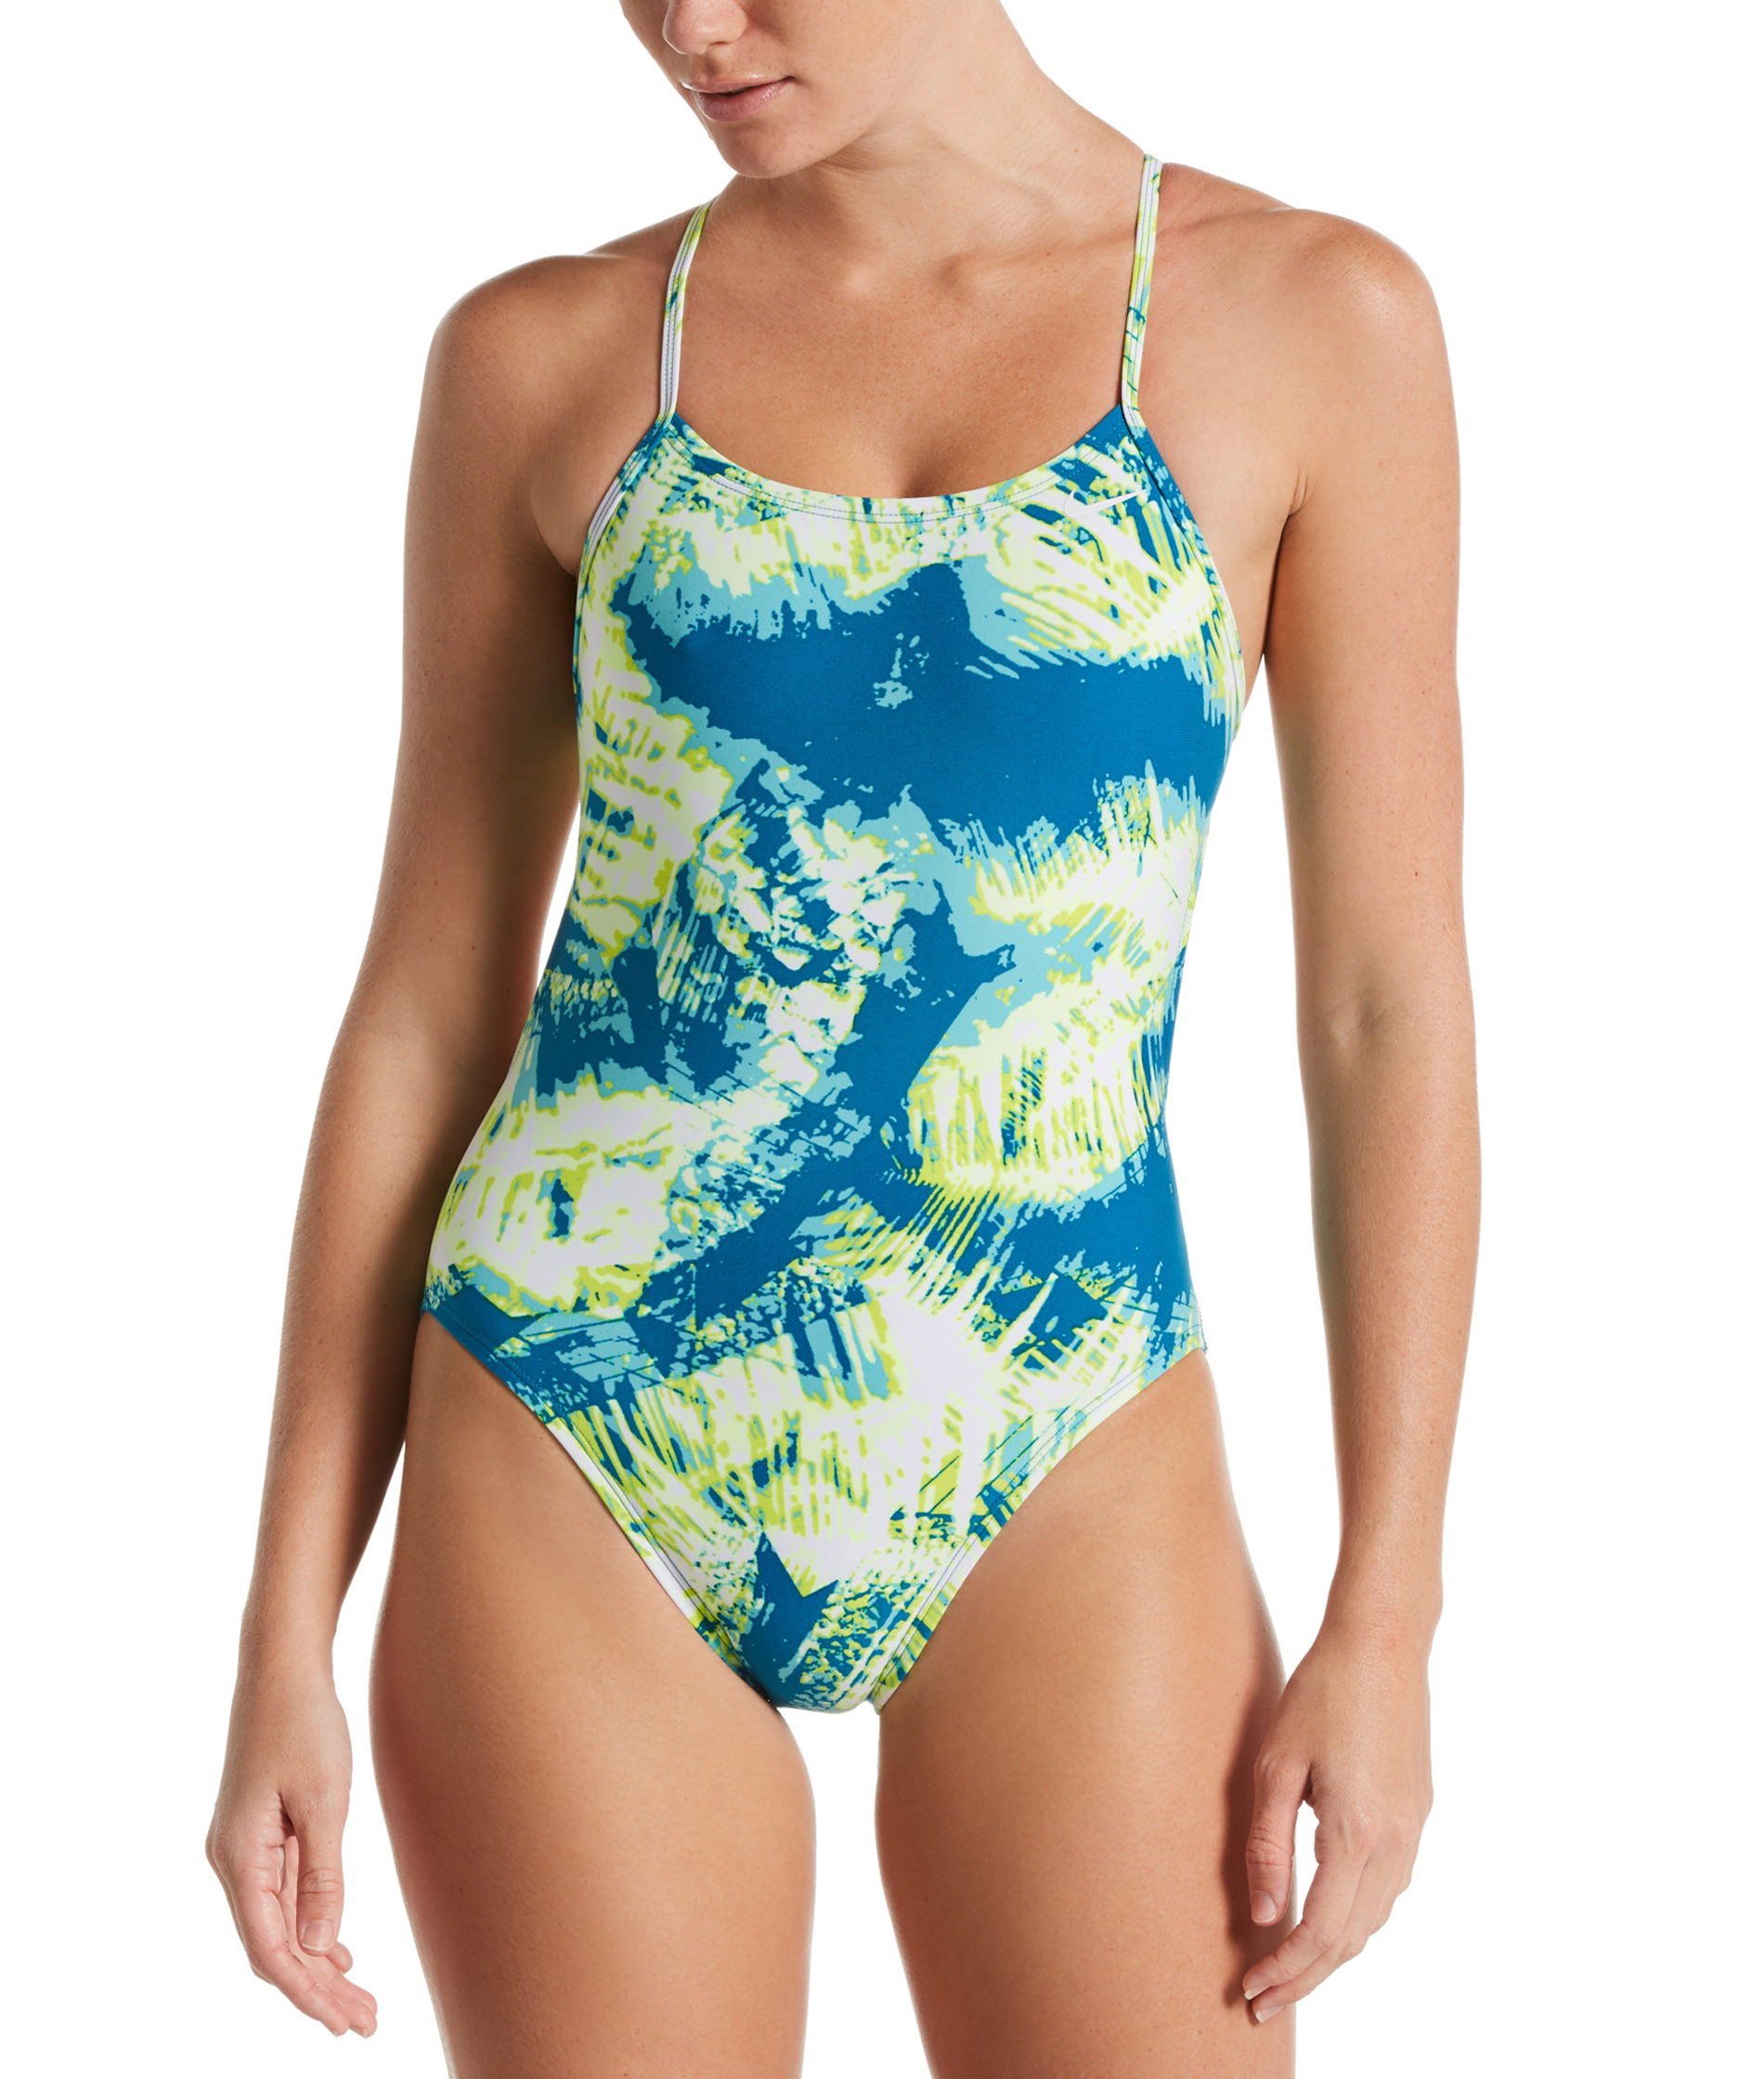 Nike Swim Ladies Solar Canopy Modern Cut-Out One Piece - Green Abyss